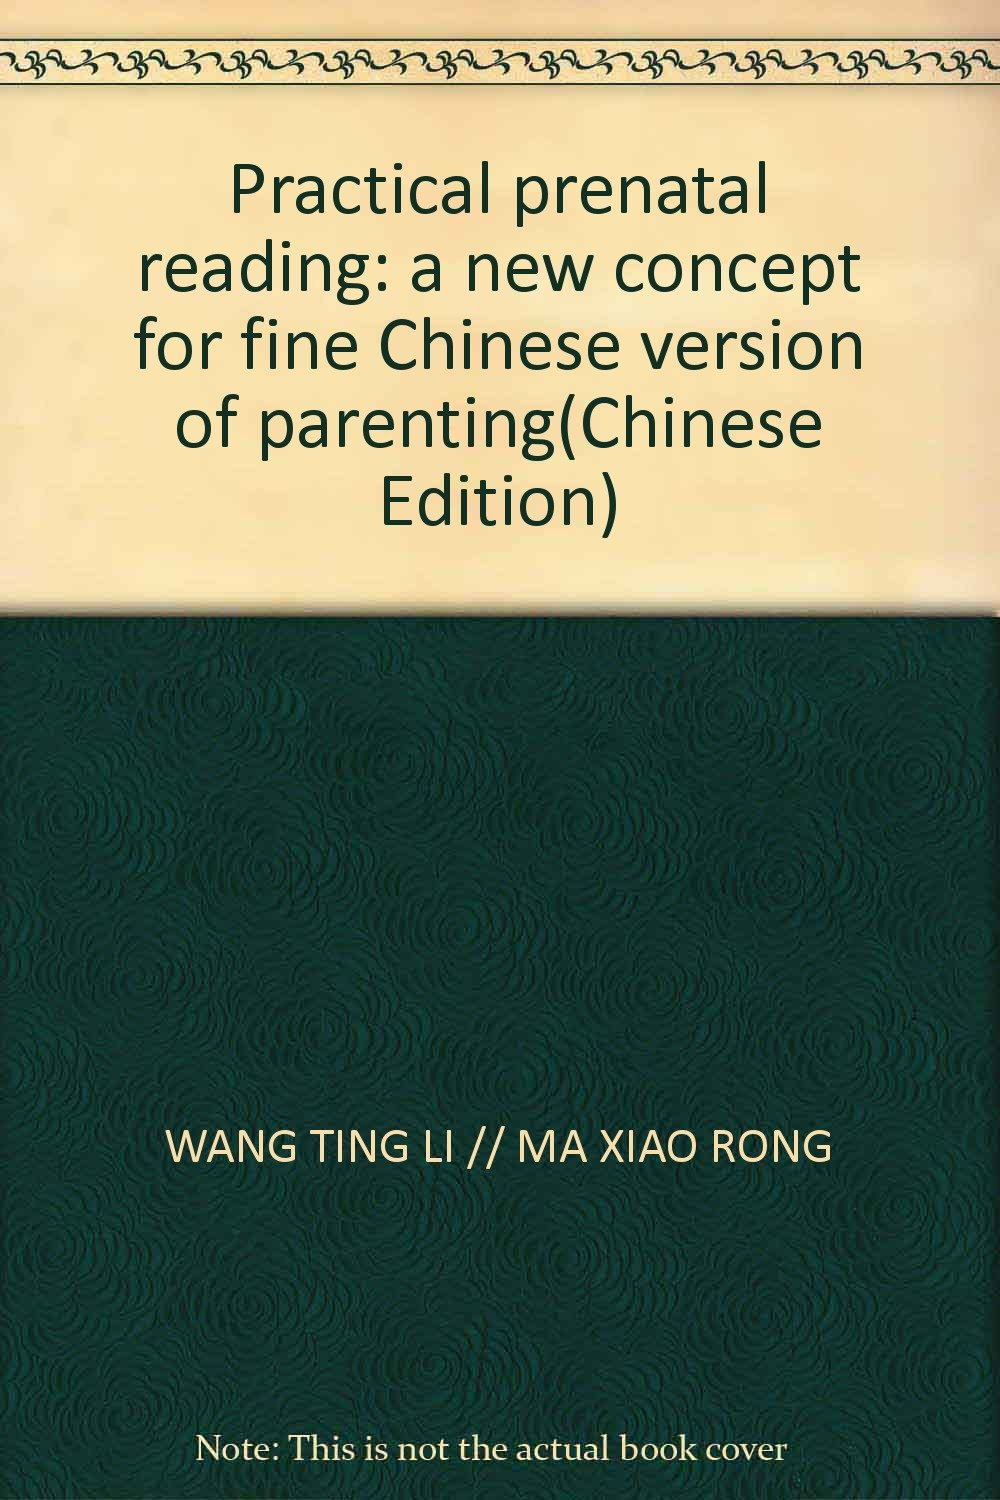 Practical prenatal reading: a new concept for fine Chinese version of parenting(Chinese Edition) pdf